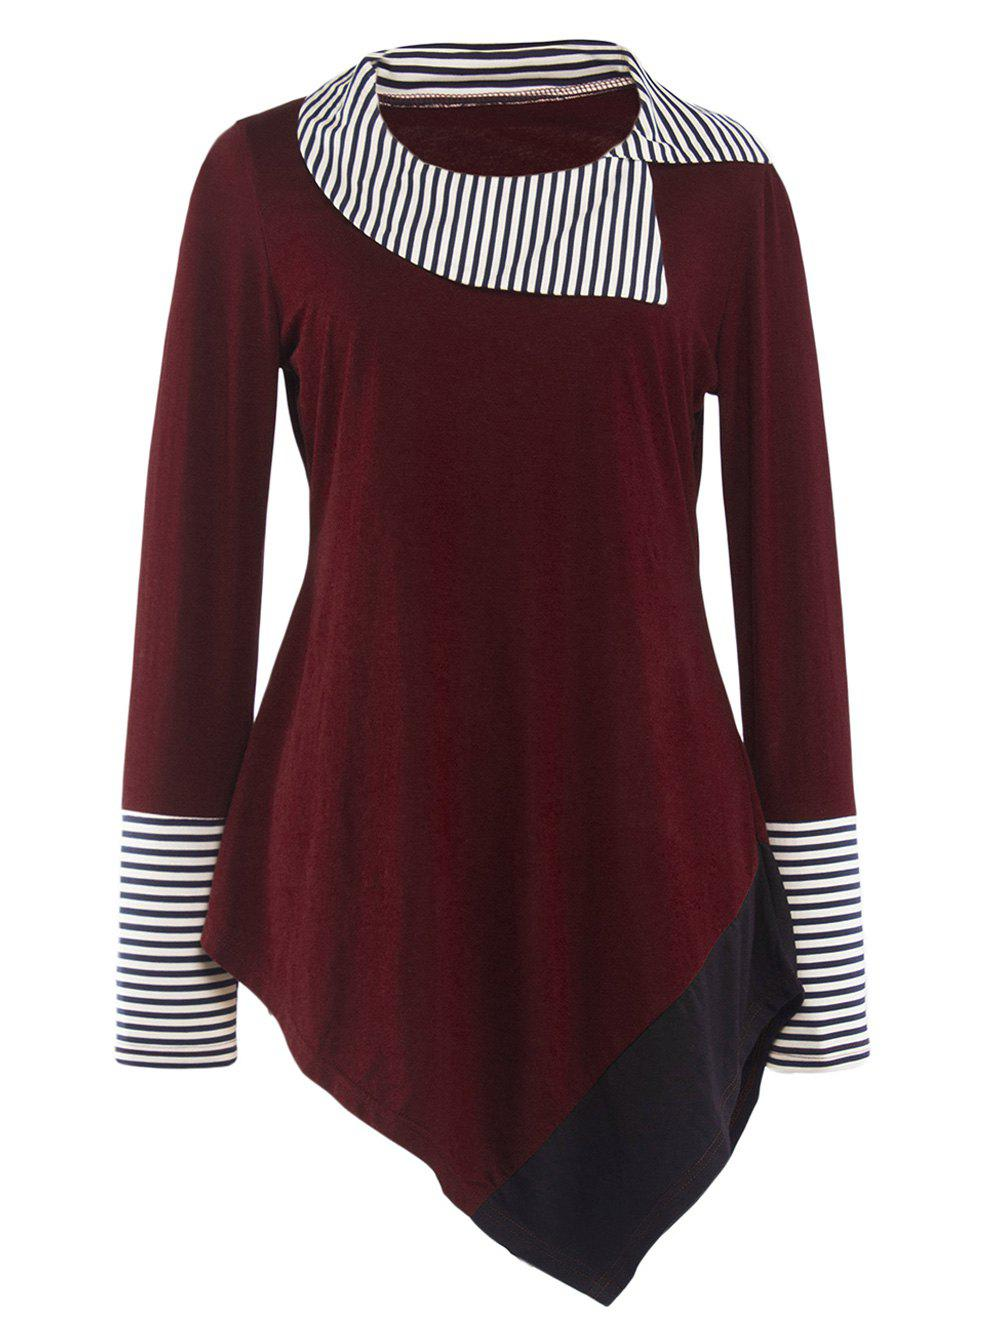 Striped Hem Asymmetric long T-shirt - Rouge vineux S